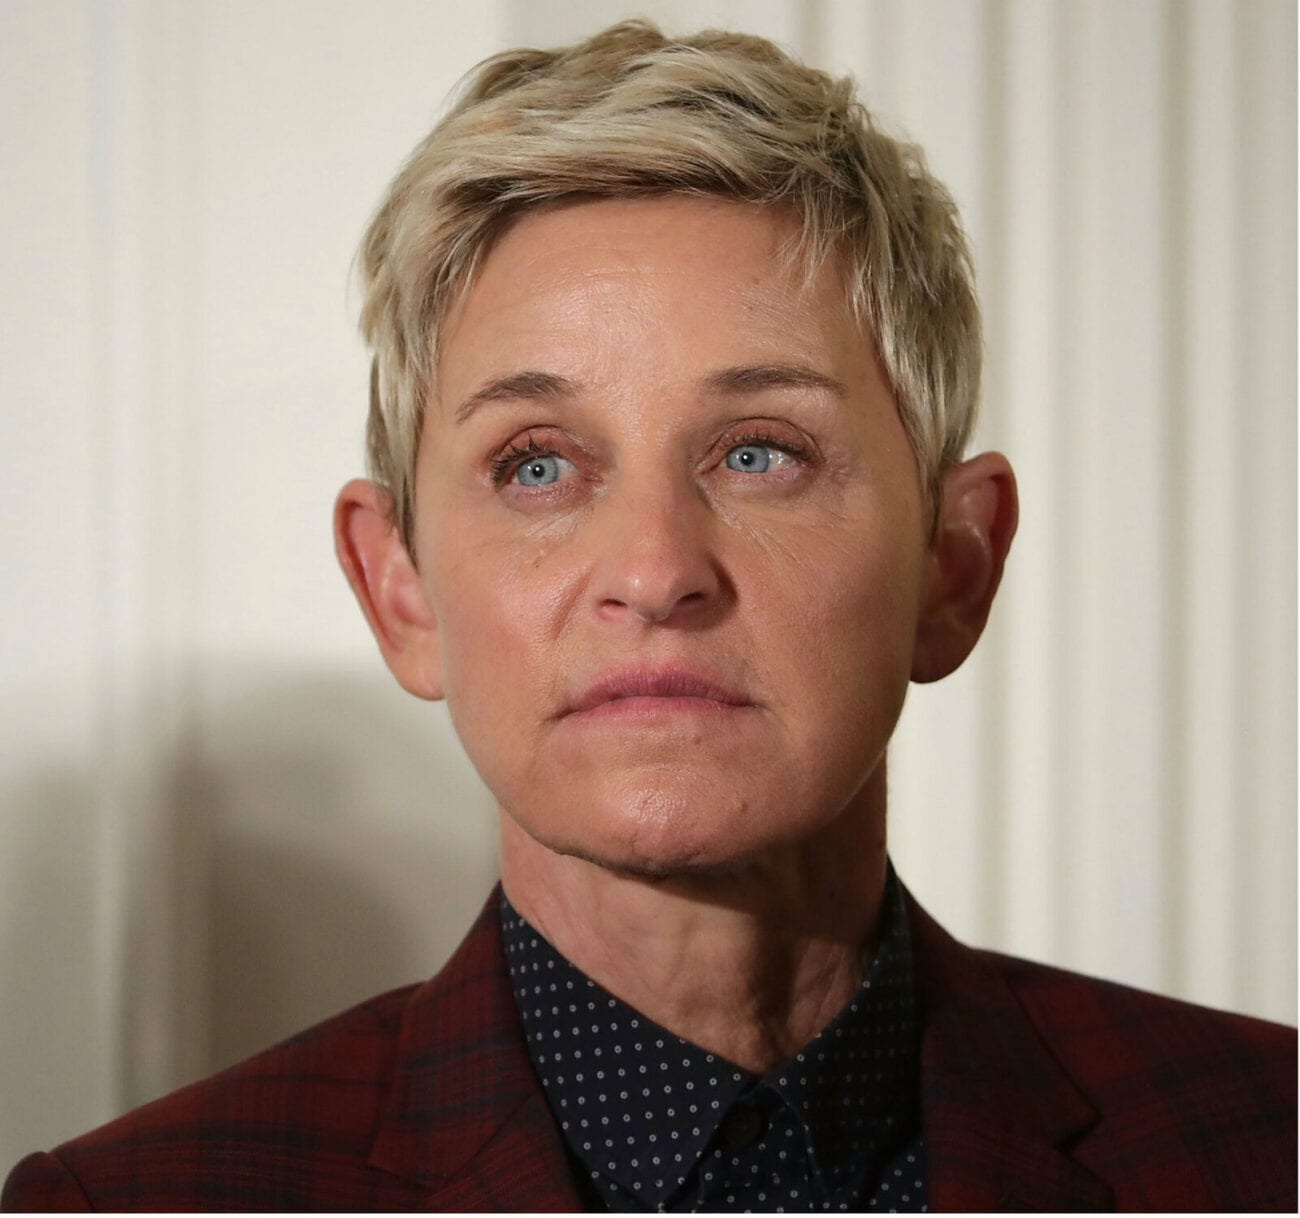 The viewership of Ellen DeGeneres's show and it has been spiraling downwards for months. Here's what's happening to Ellen's net worth.